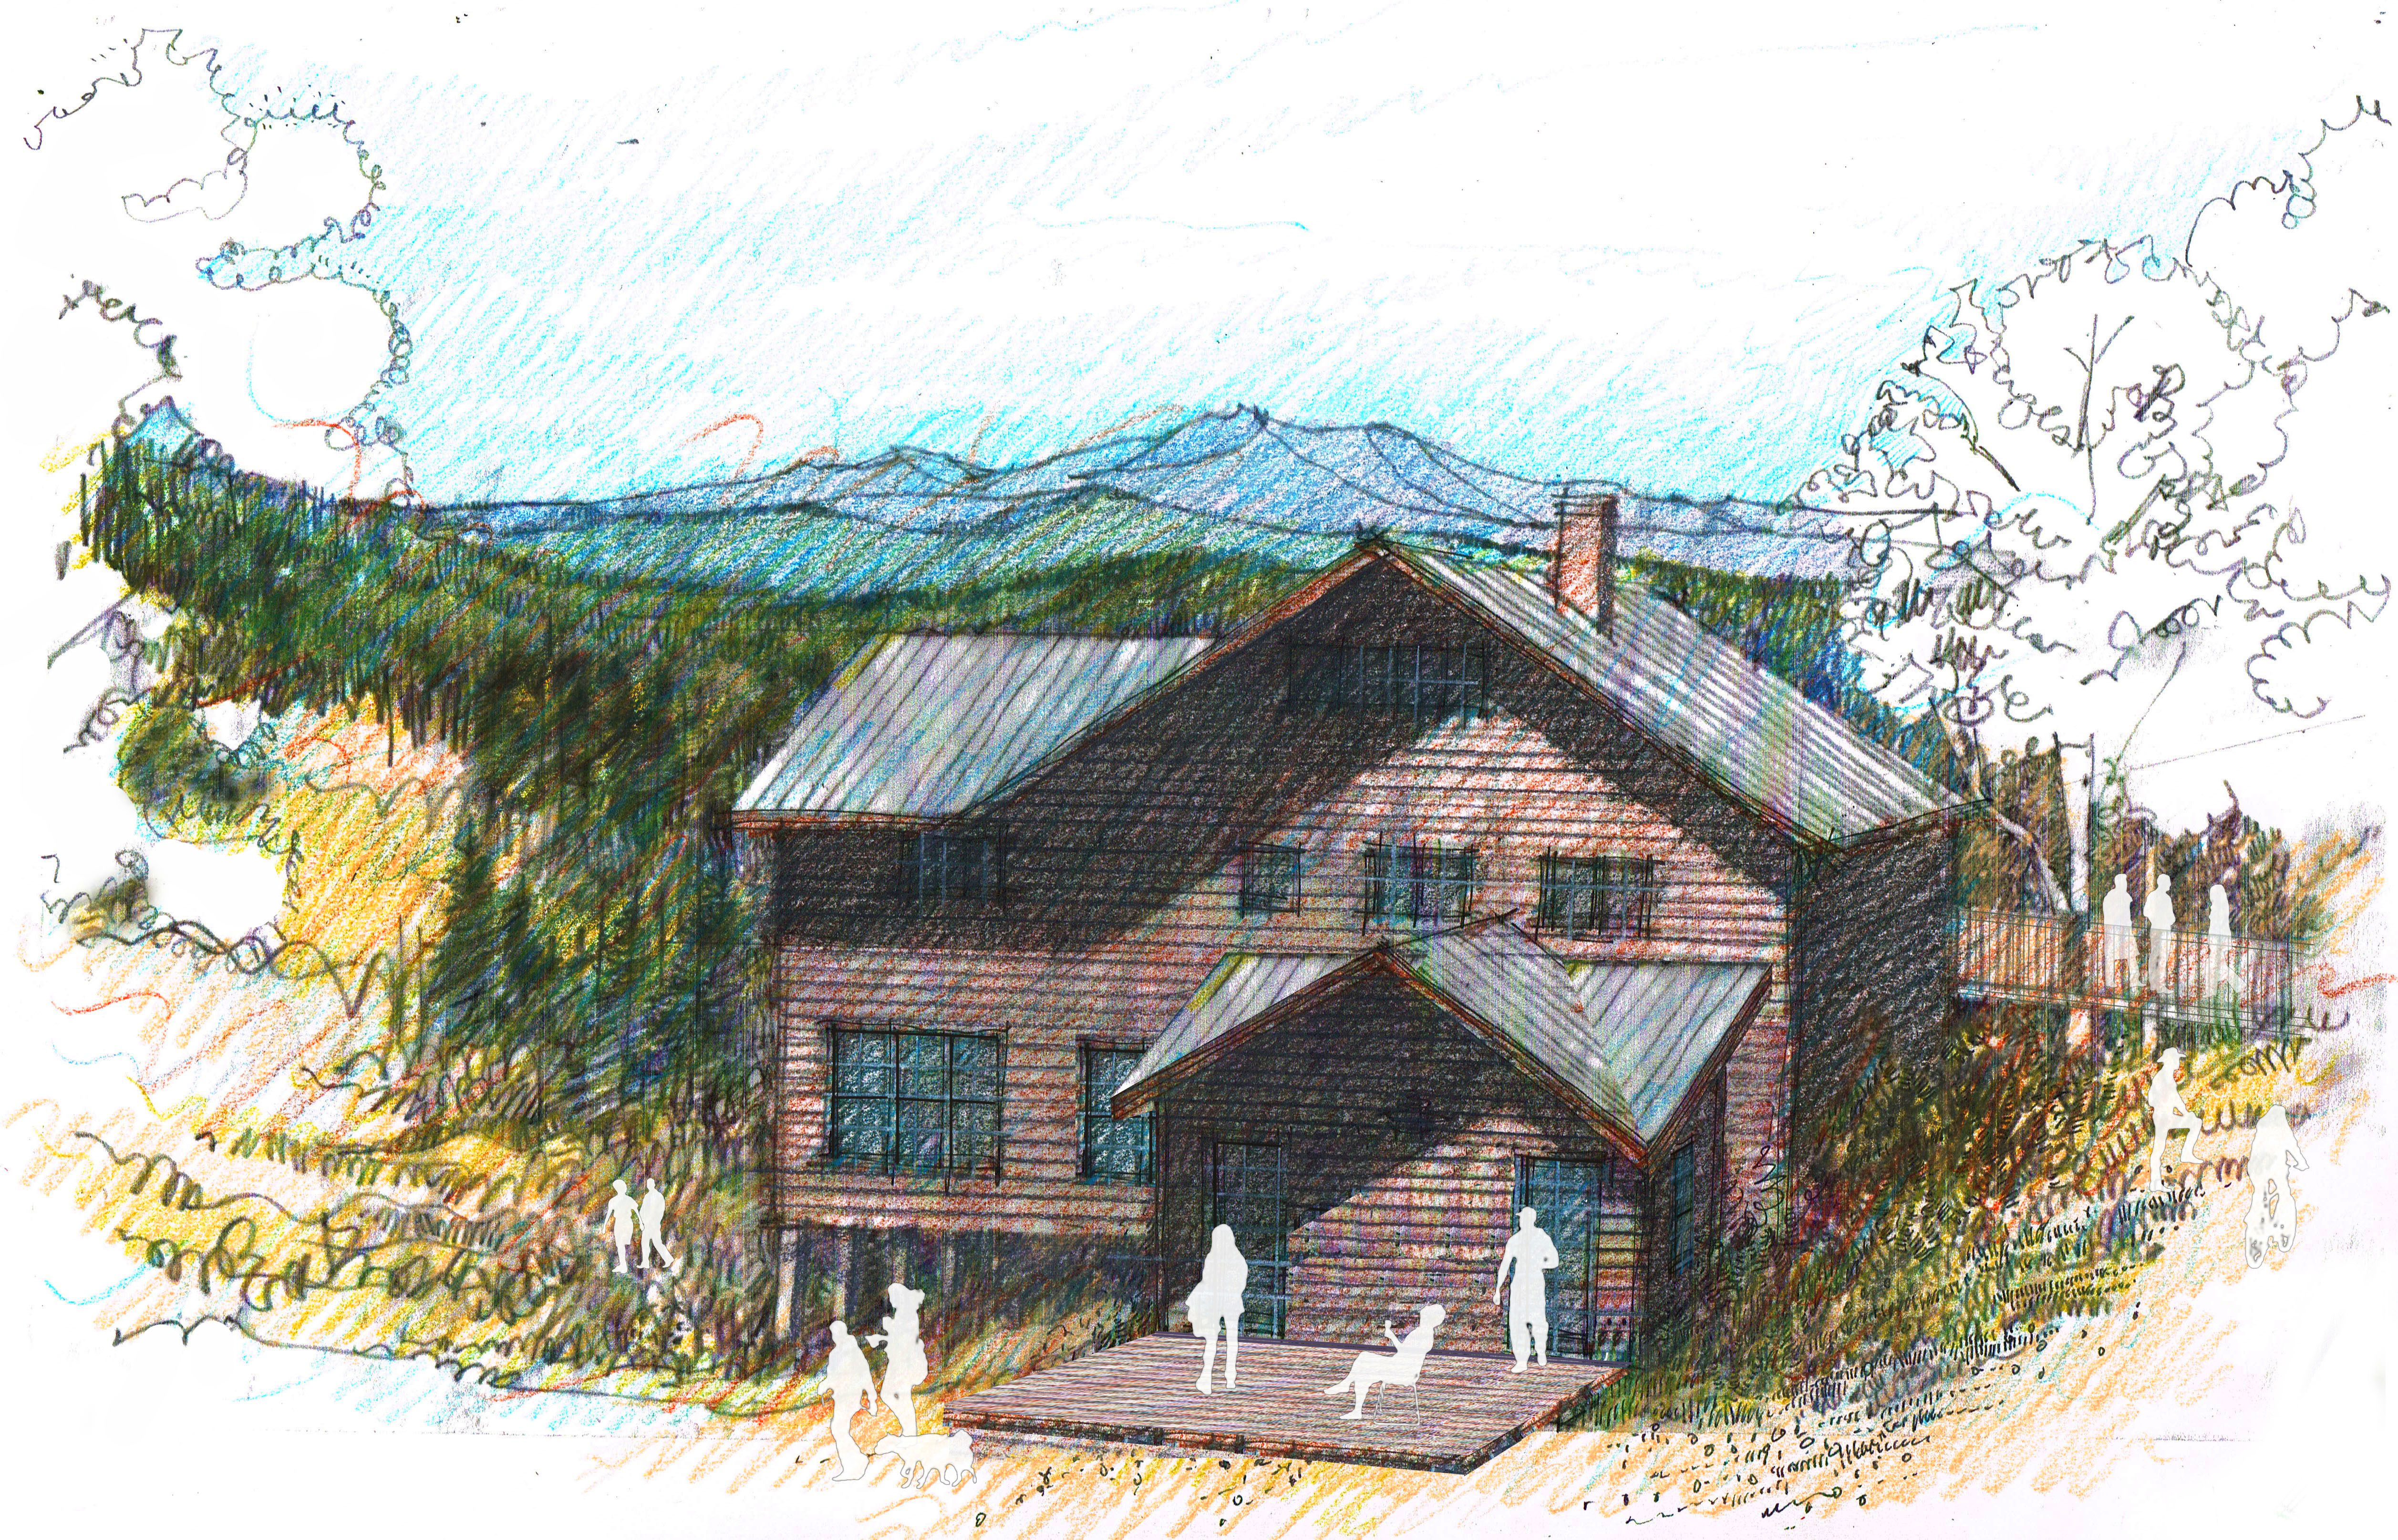 Sketch of proposed addition to retreat center